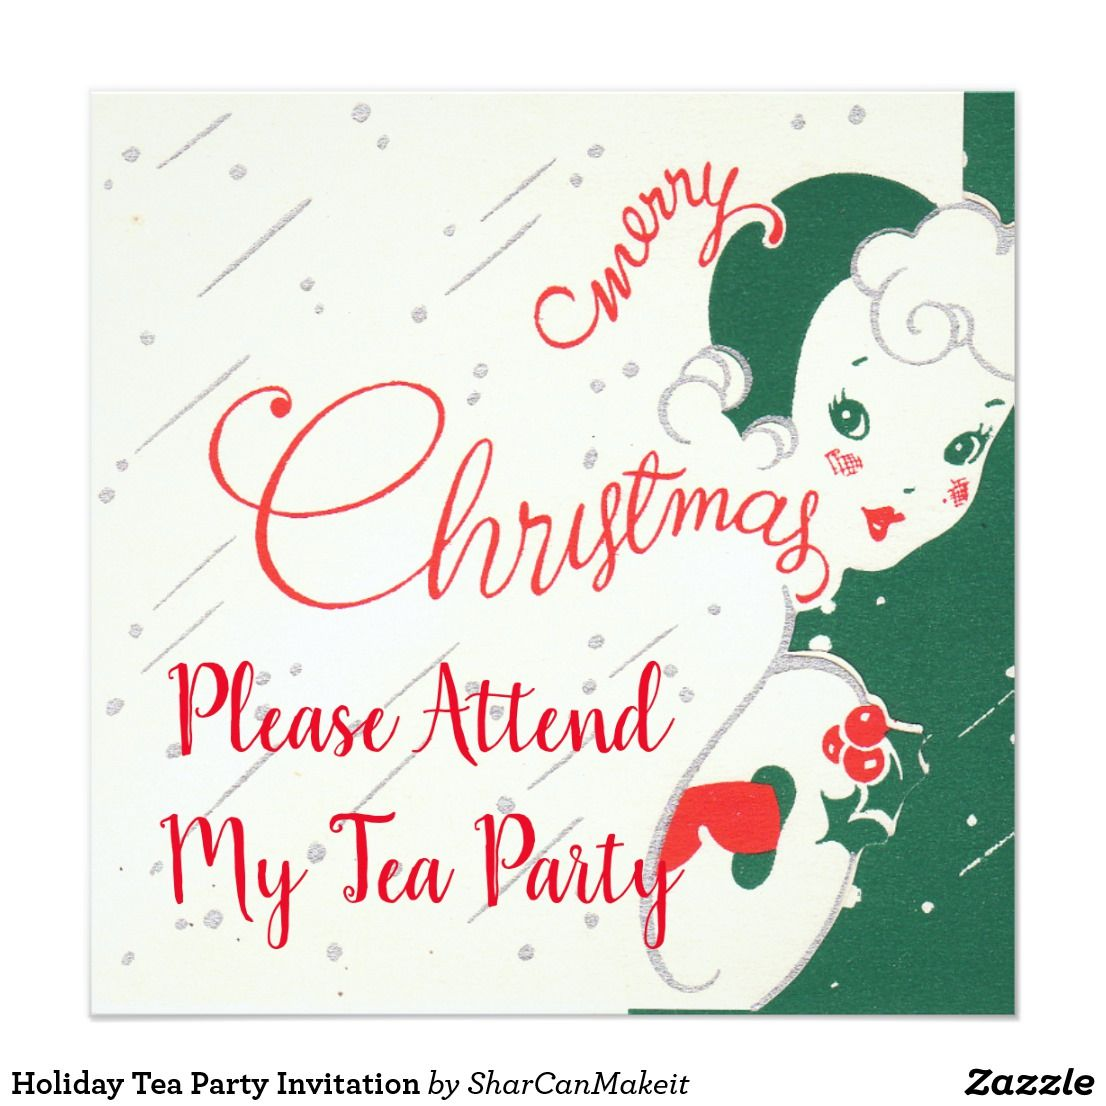 Holiday tea party invitation pinterest holiday tea party invitation stopboris Images